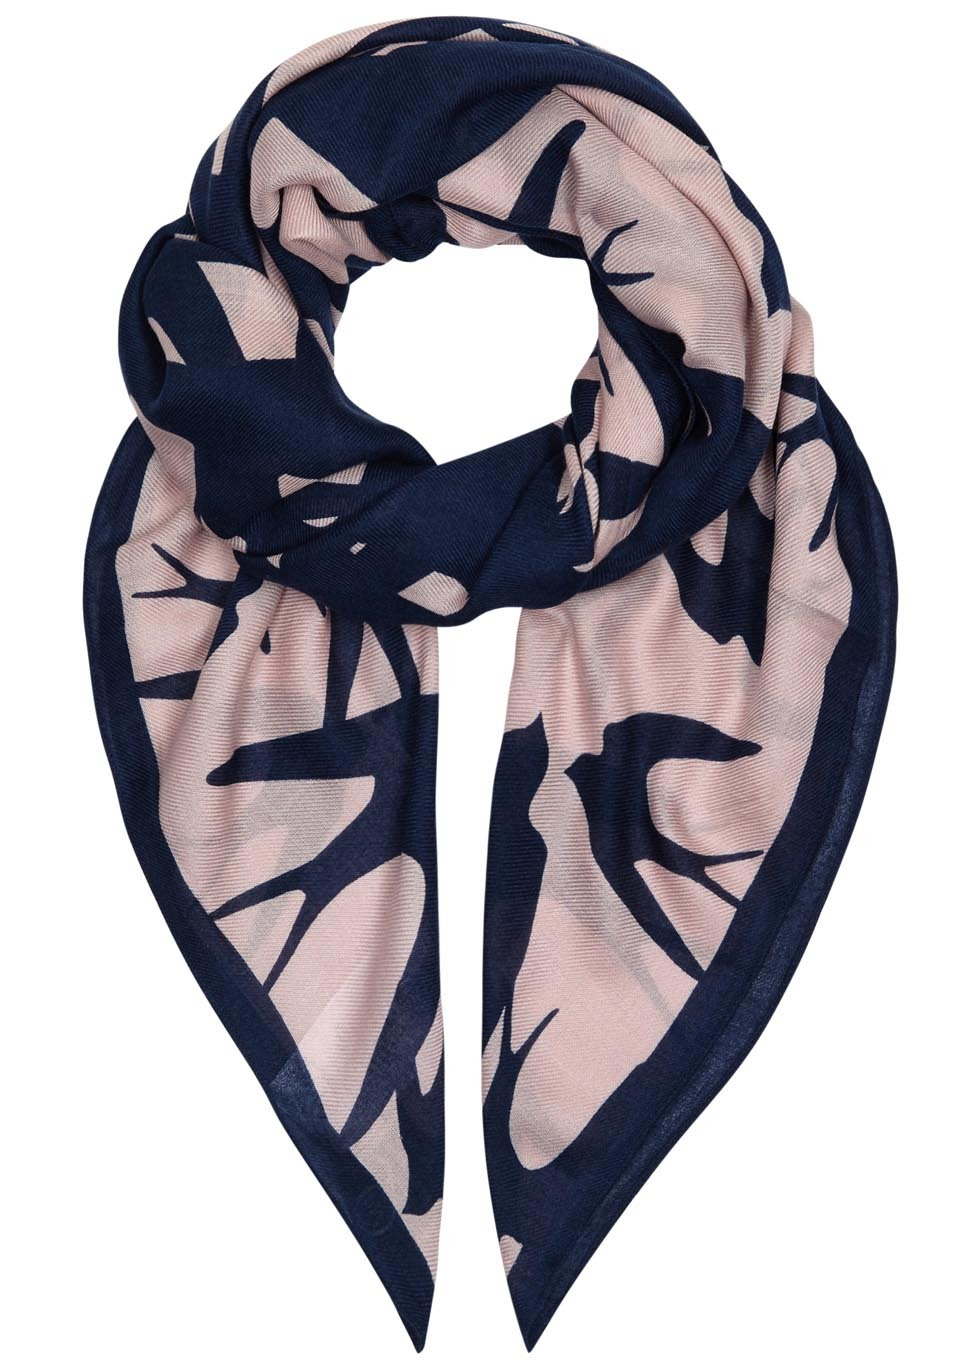 Swallow Swarm Printed Modal Blend Scarf - secondary colour: blush; predominant colour: navy; occasions: casual, evening, creative work; type of pattern: light; style: square; size: standard; material: fabric; pattern: patterned/print; season: a/w 2015; wardrobe: highlight